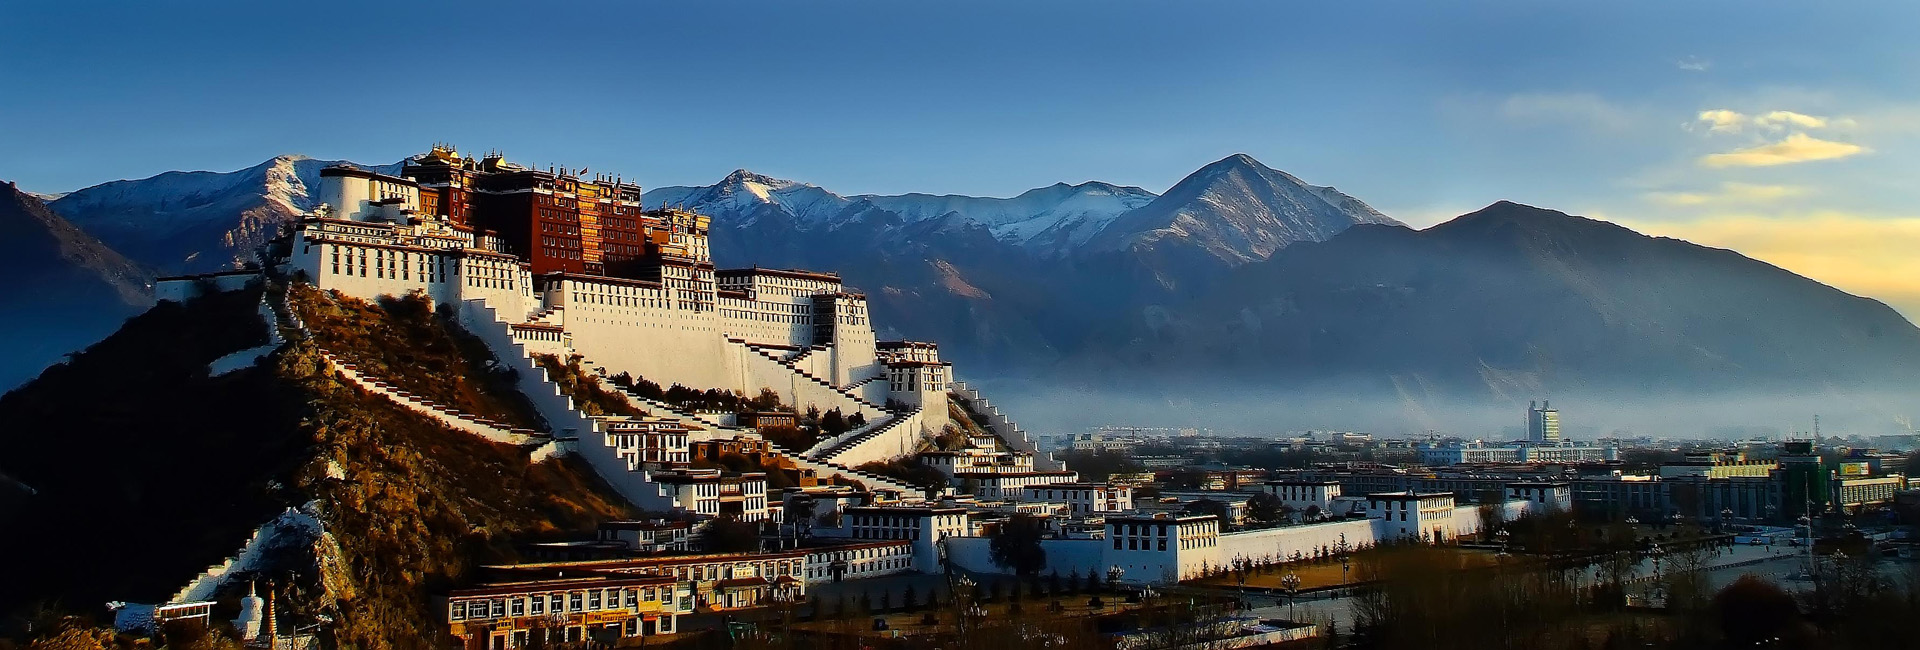 Lhasa Tours and Travel